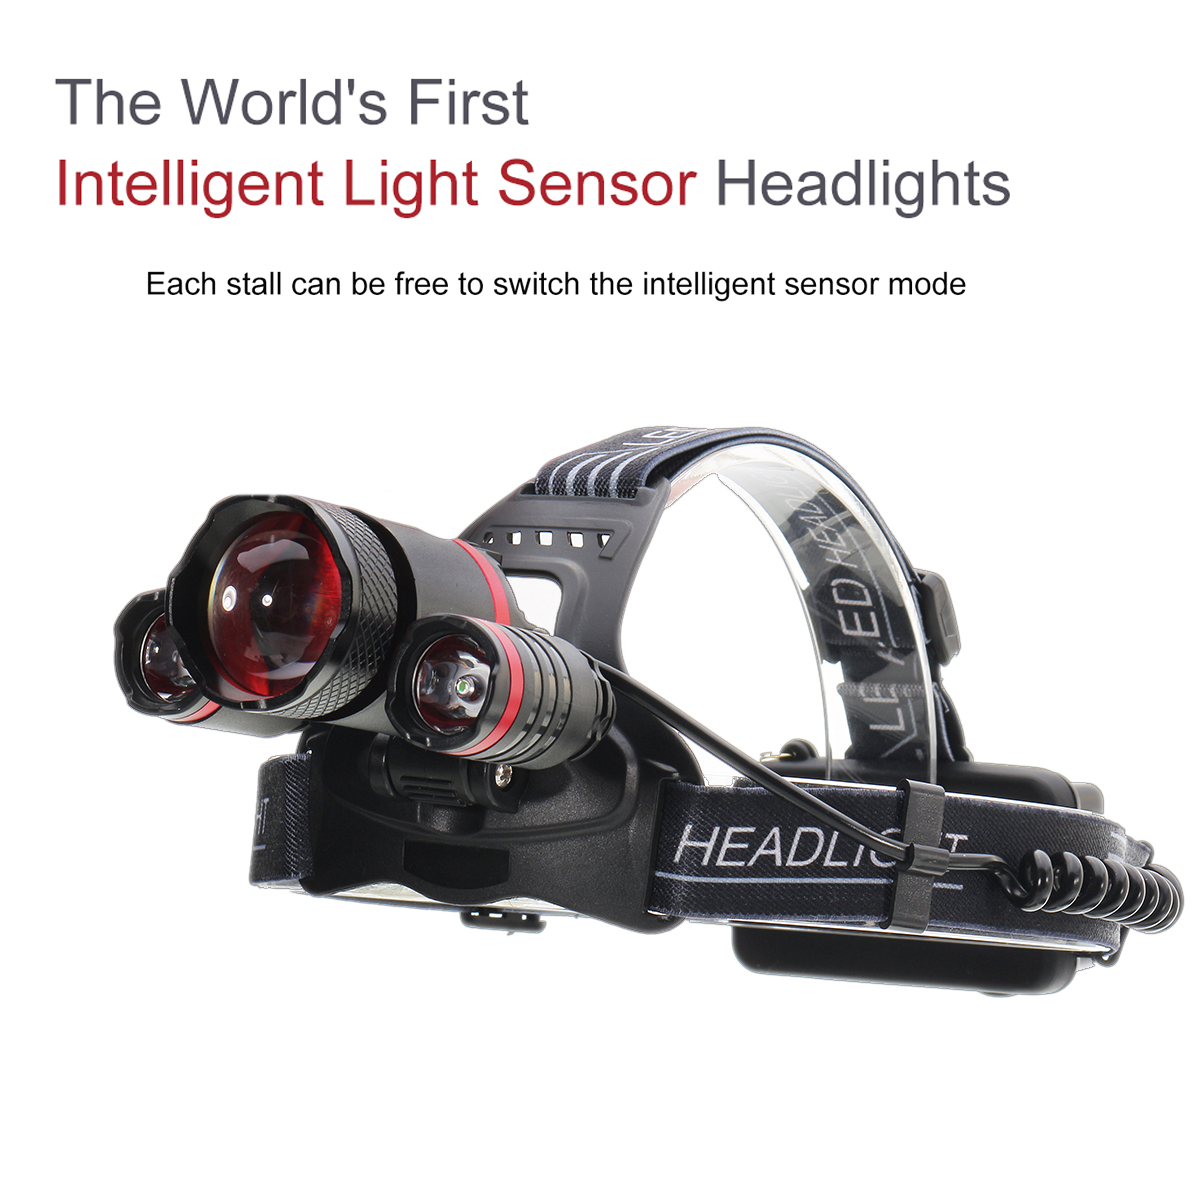 XANES 1500LM 3T6 Smart Light Sensor Bicycle HeadLamp 5 Switch Modes Zoomable Adjustable LED Light